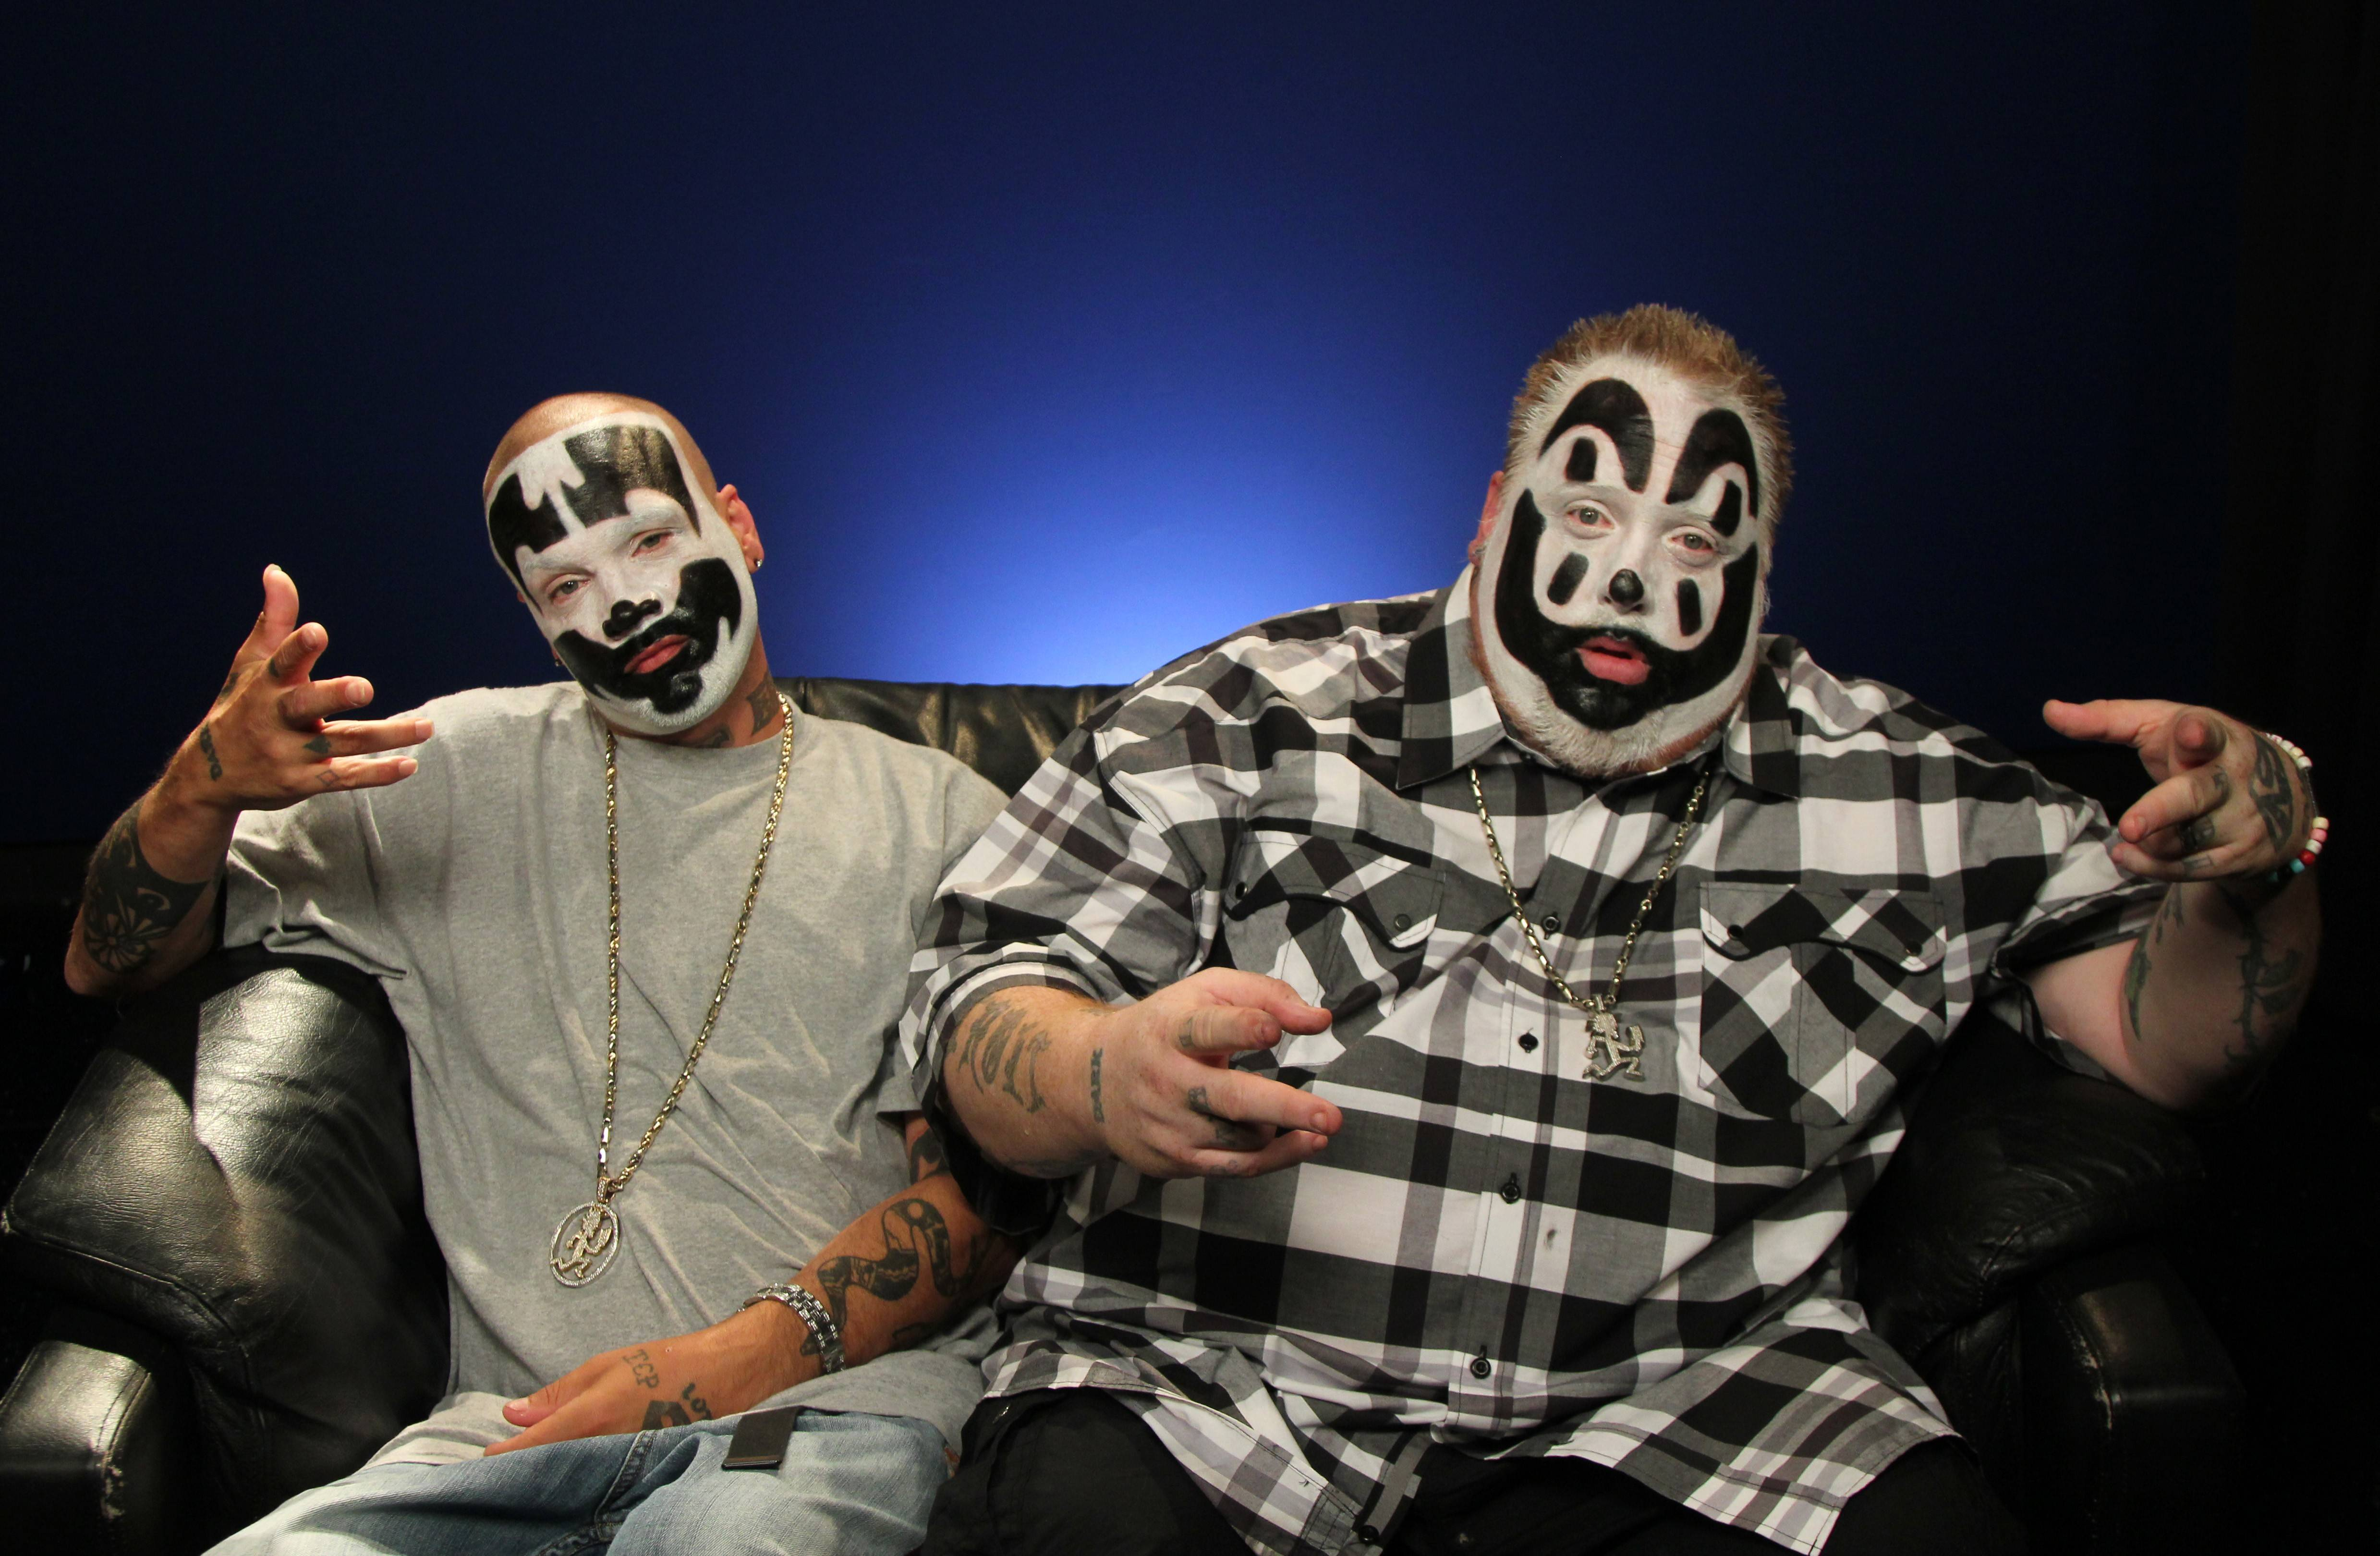 Joseph Utsler, known as Shaggy 2 Dope, left, and Joseph Bruce, also known as Violent J, form Insane Clown Posse. The yearly festival headlined by the Detroit rappers is seeking a new home.